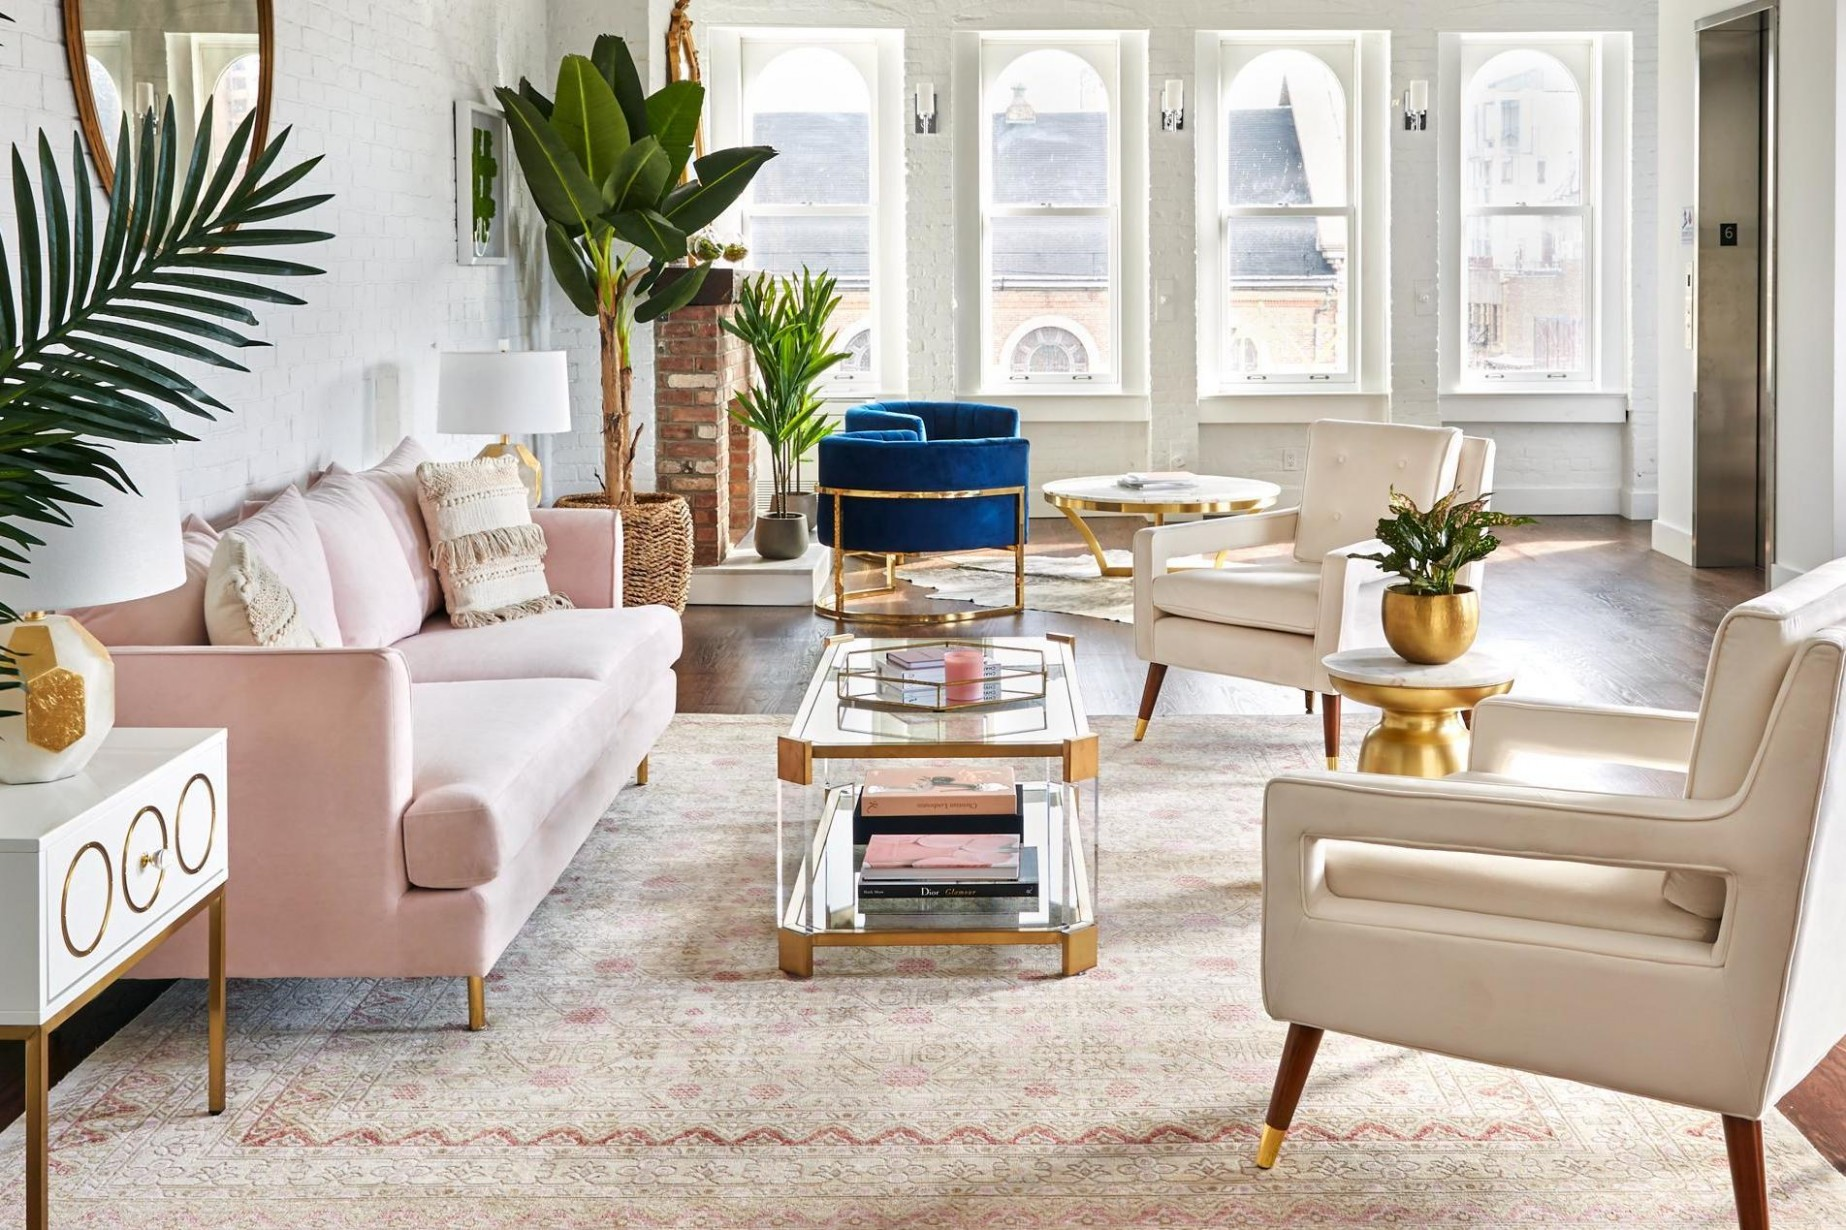 New York City has an apartment solely for Instagram influencers to  - Apartment Design Instagram